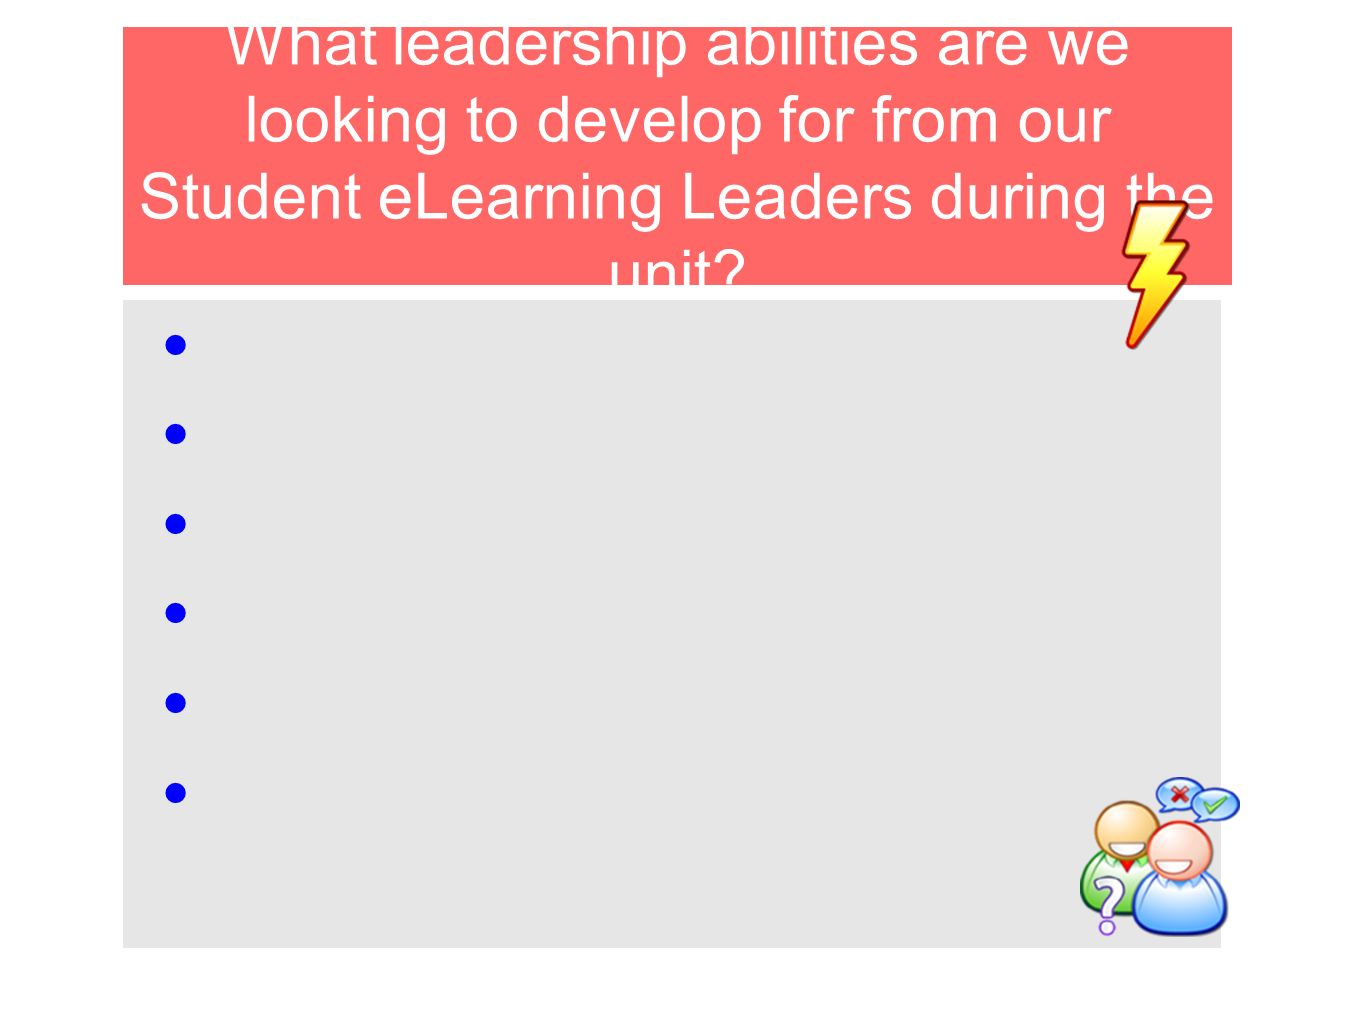 What leadership abilities are we looking to develop for from our Student eLearning Leaders during the unit